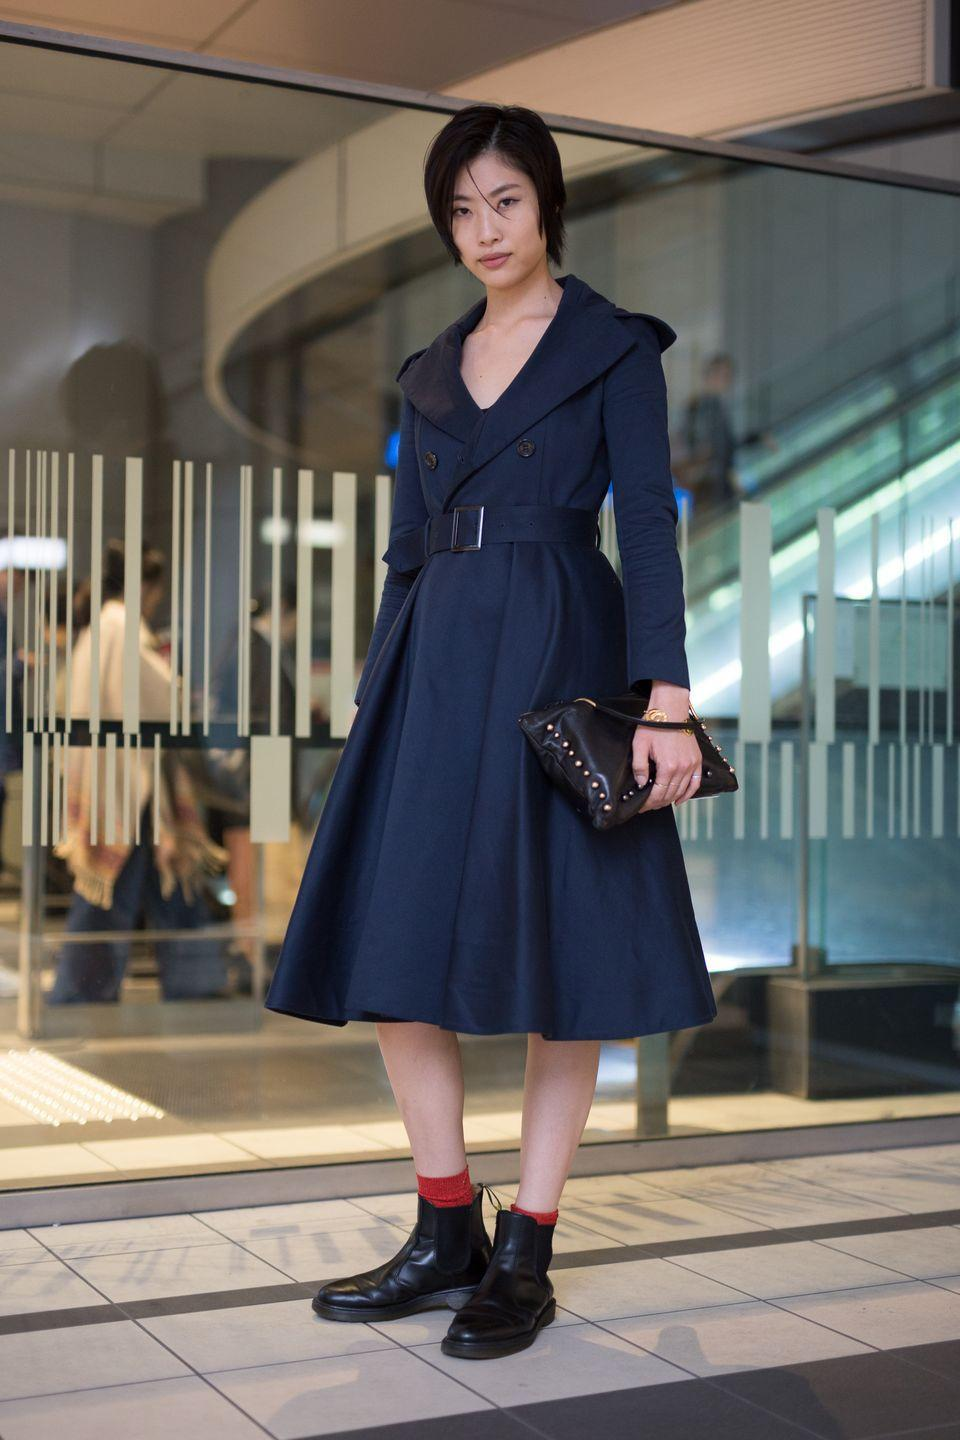 """<p>Fans of the traditional trench silhouette will love the dress, shirt, and jumpsuit iterations just as much. Splurging on a deconstructed style will ensure you're polished at all times. </p><p><strong>Get the look: Staud </strong>Jacklyn topstitched cotton-blend twill wrap dress, $315, <a href=""""https://www.neimanmarcus.com/p/staud-jacklyn-midi-wrap-dress-prod236820277?utm_source=google_shopping&adpos=&scid=scplpsku198510939&sc_intid=sku198510939&ecid=NMCS__GooglePLA&gclid=CjwKCAjw0On8BRAgEiwAincsHEnXXryfYsN_CC_bc7ltGOs3lmKxFARbRHUj5-fSPg9BjGMrcUfDJRoCJ5EQAvD_BwE&gclsrc=aw.ds"""" rel=""""nofollow noopener"""" target=""""_blank"""" data-ylk=""""slk:neimanmarcus.com"""" class=""""link rapid-noclick-resp"""">neimanmarcus.com</a>.</p>"""